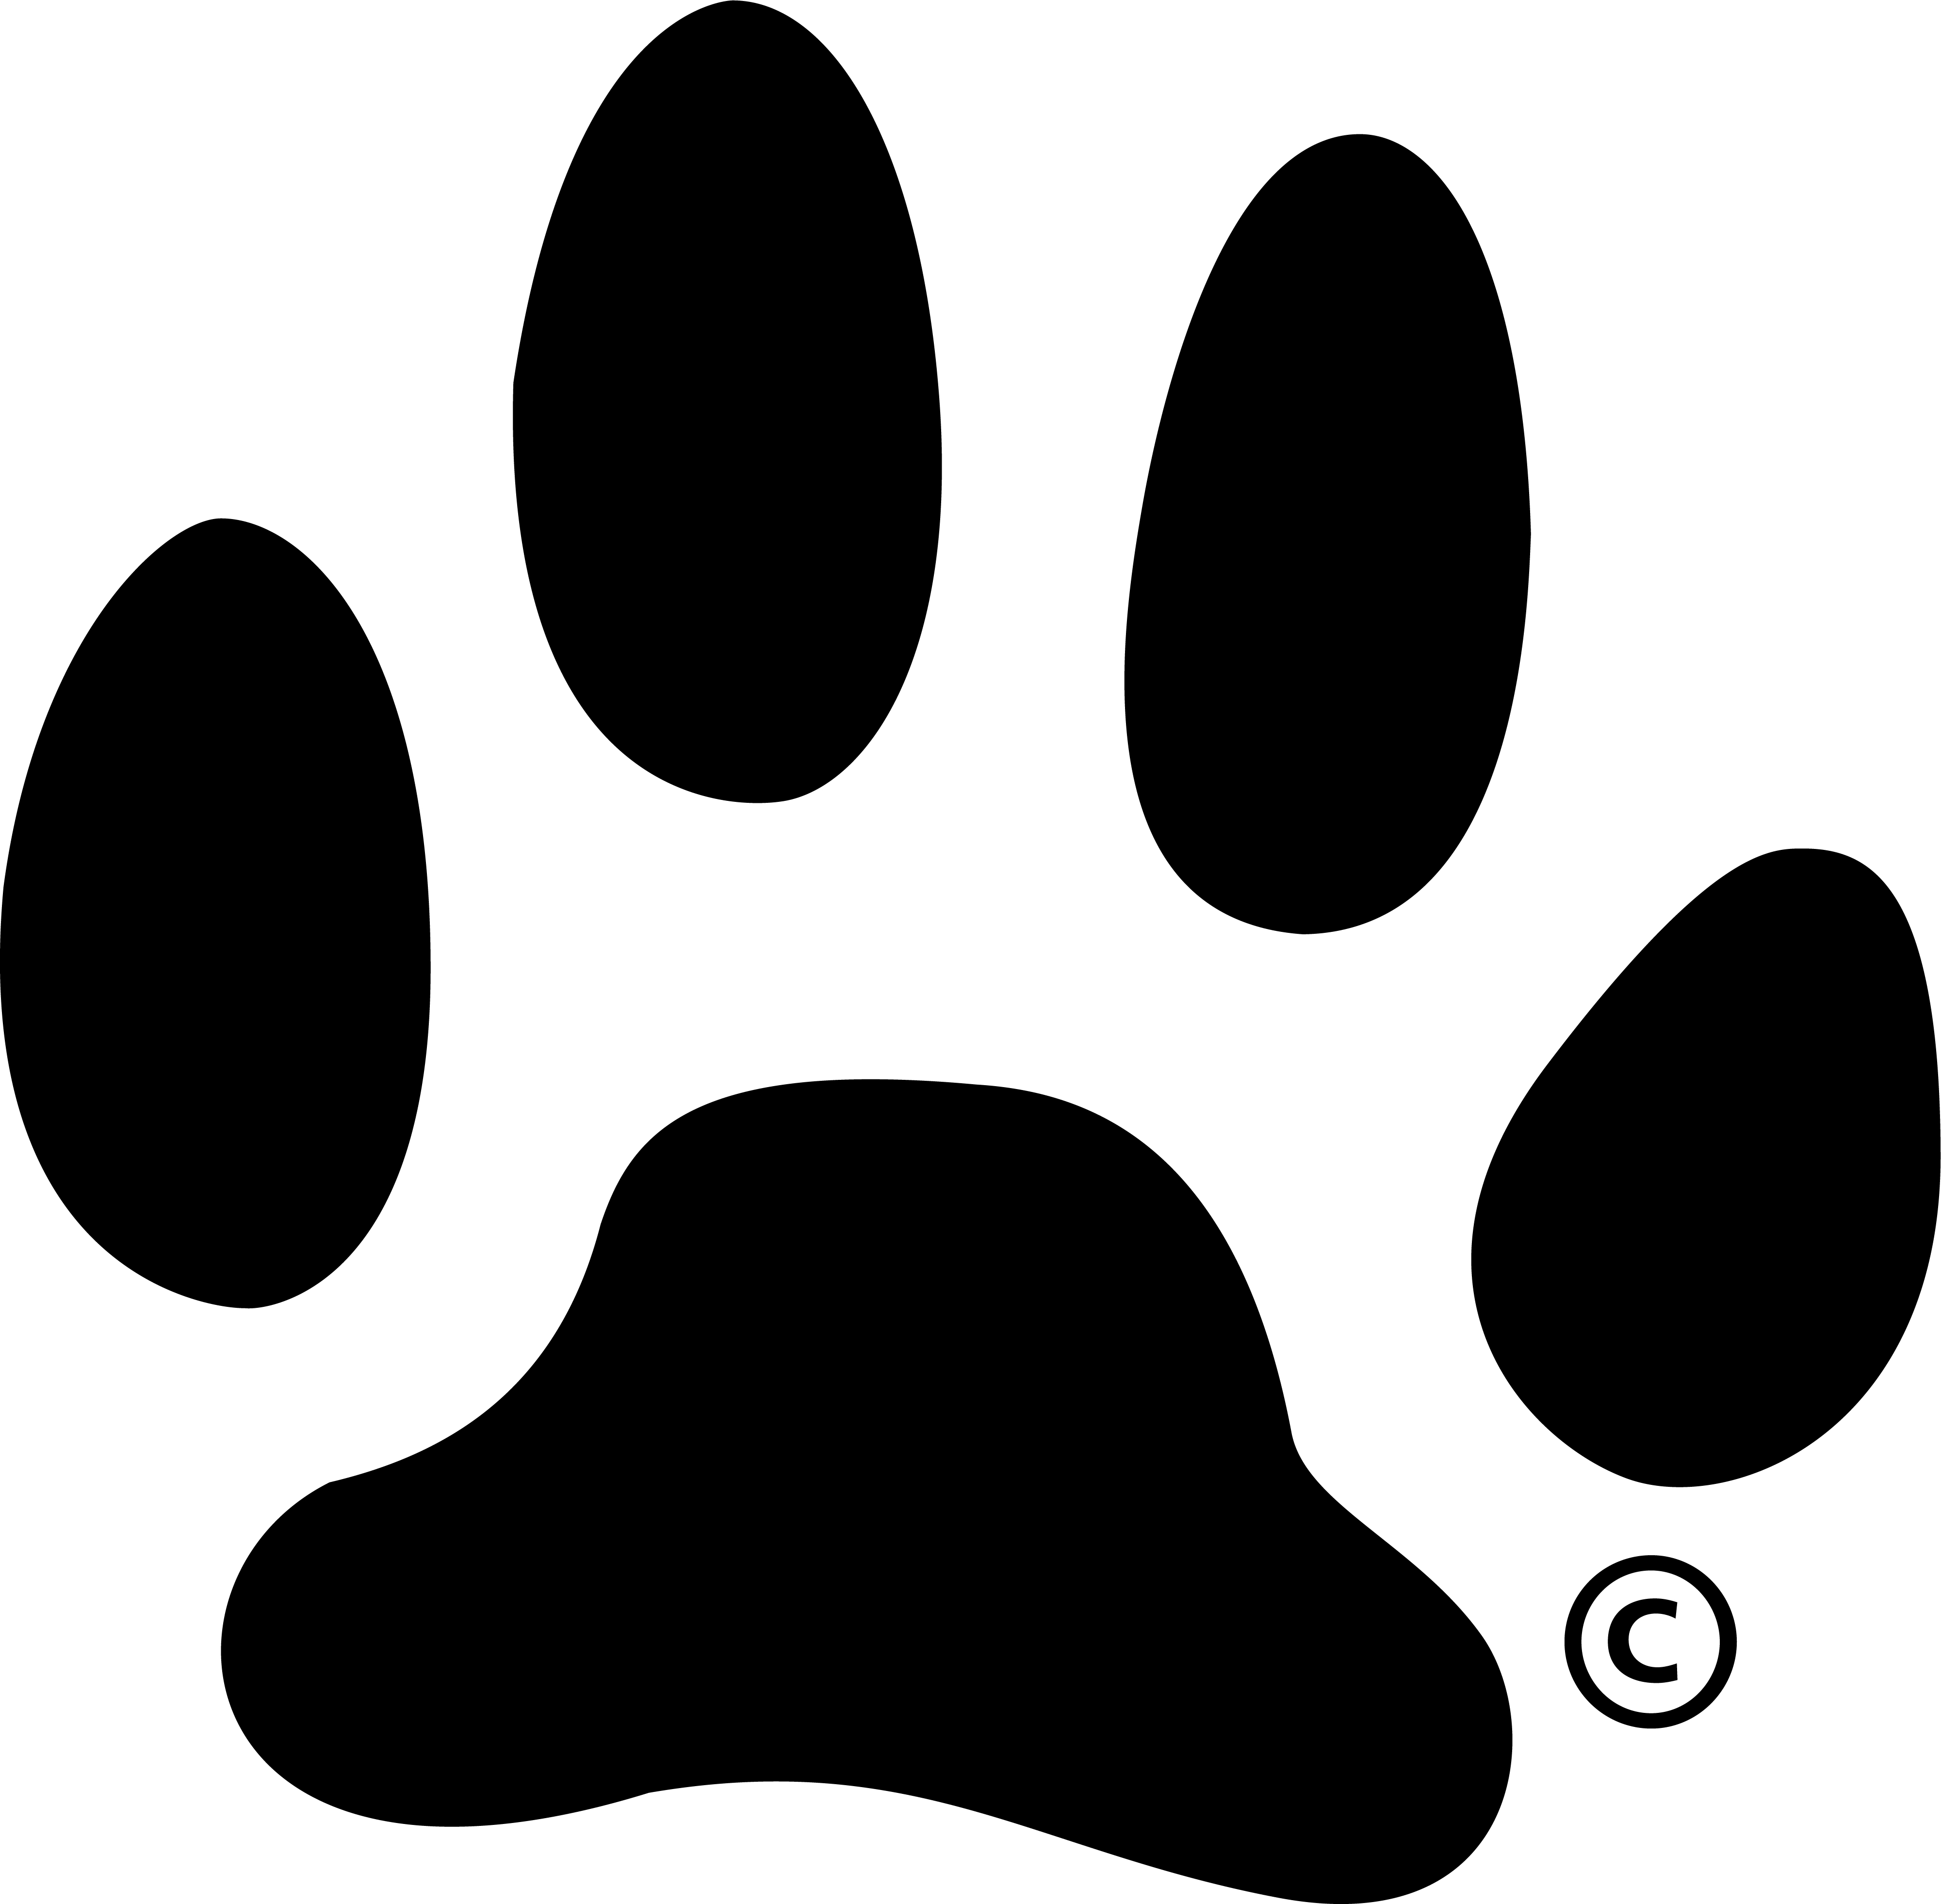 Black paw print logo company clipart vector labs our logos barton community college rh bartonccc edu thecheapjerseys Images